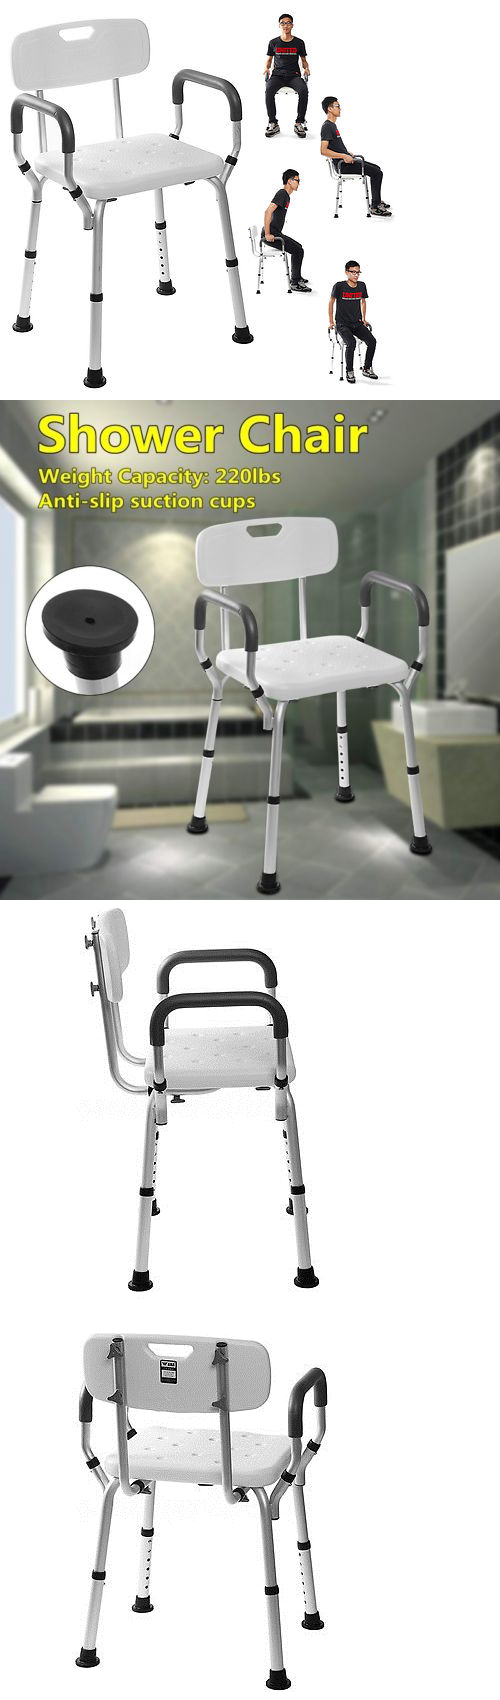 Shower and Bath Seats: Adjustable Medical Bathtub Bath Shower Chair ...